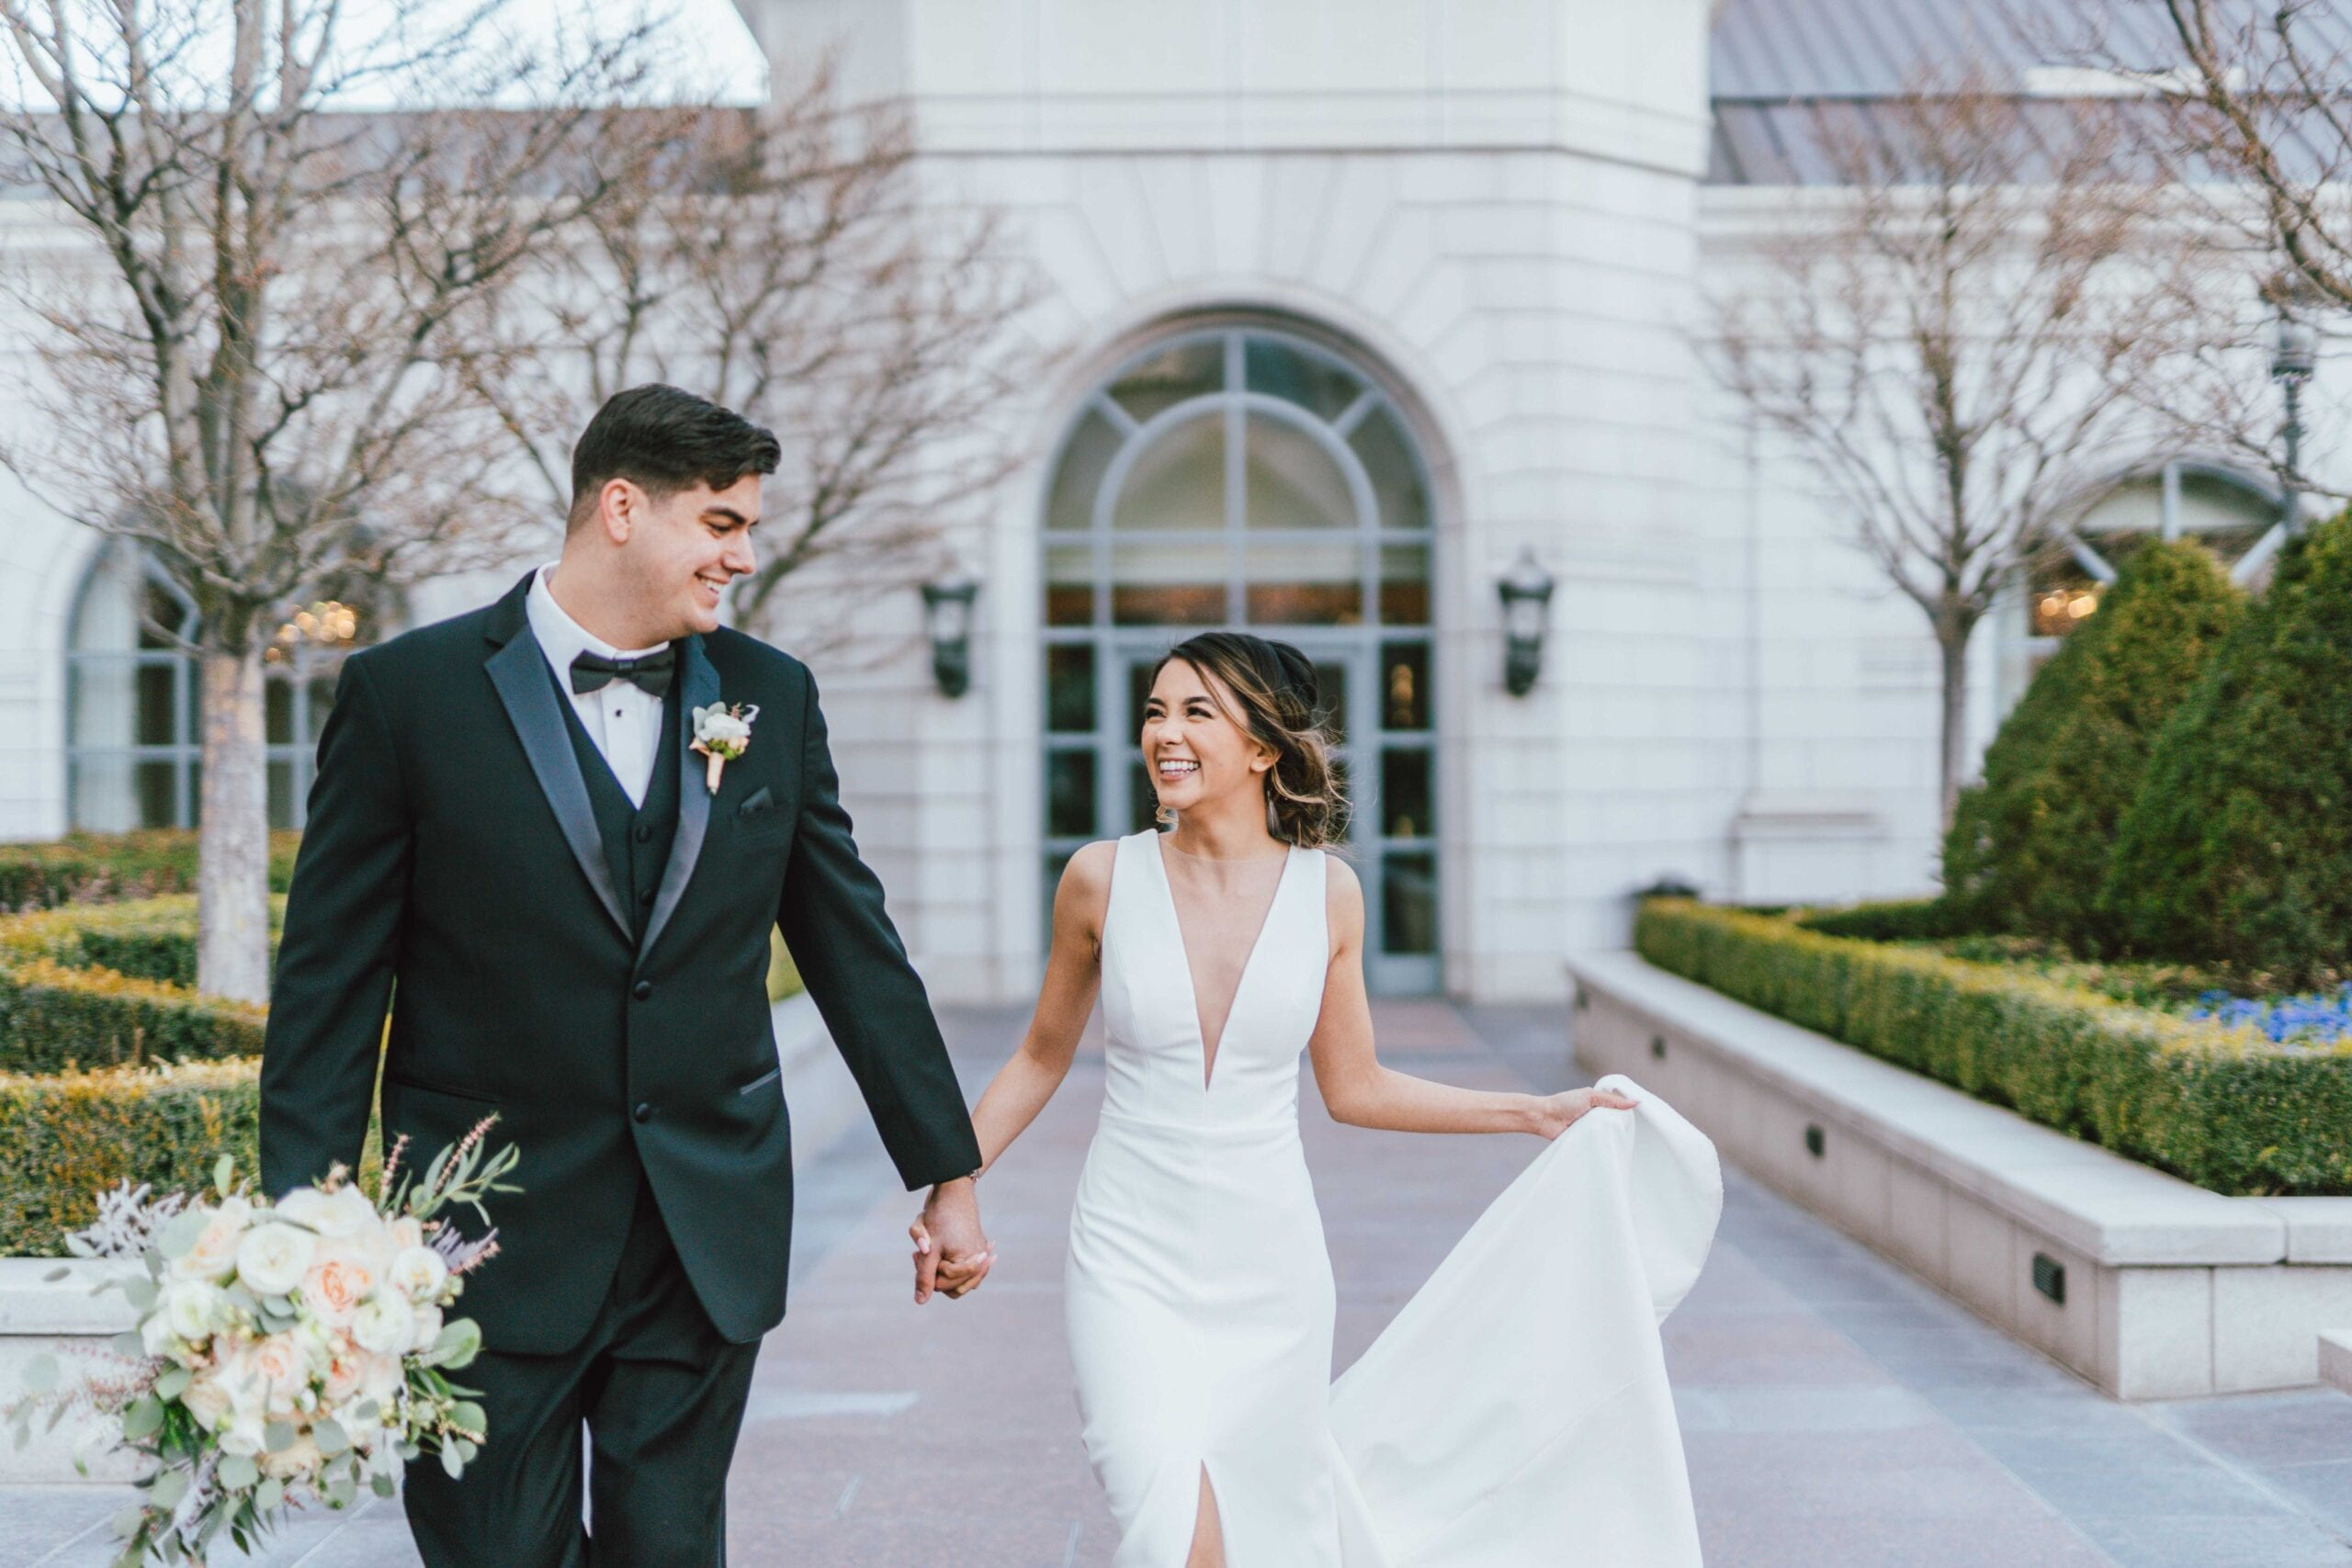 love brittny wedding at grand america hotel picture happy